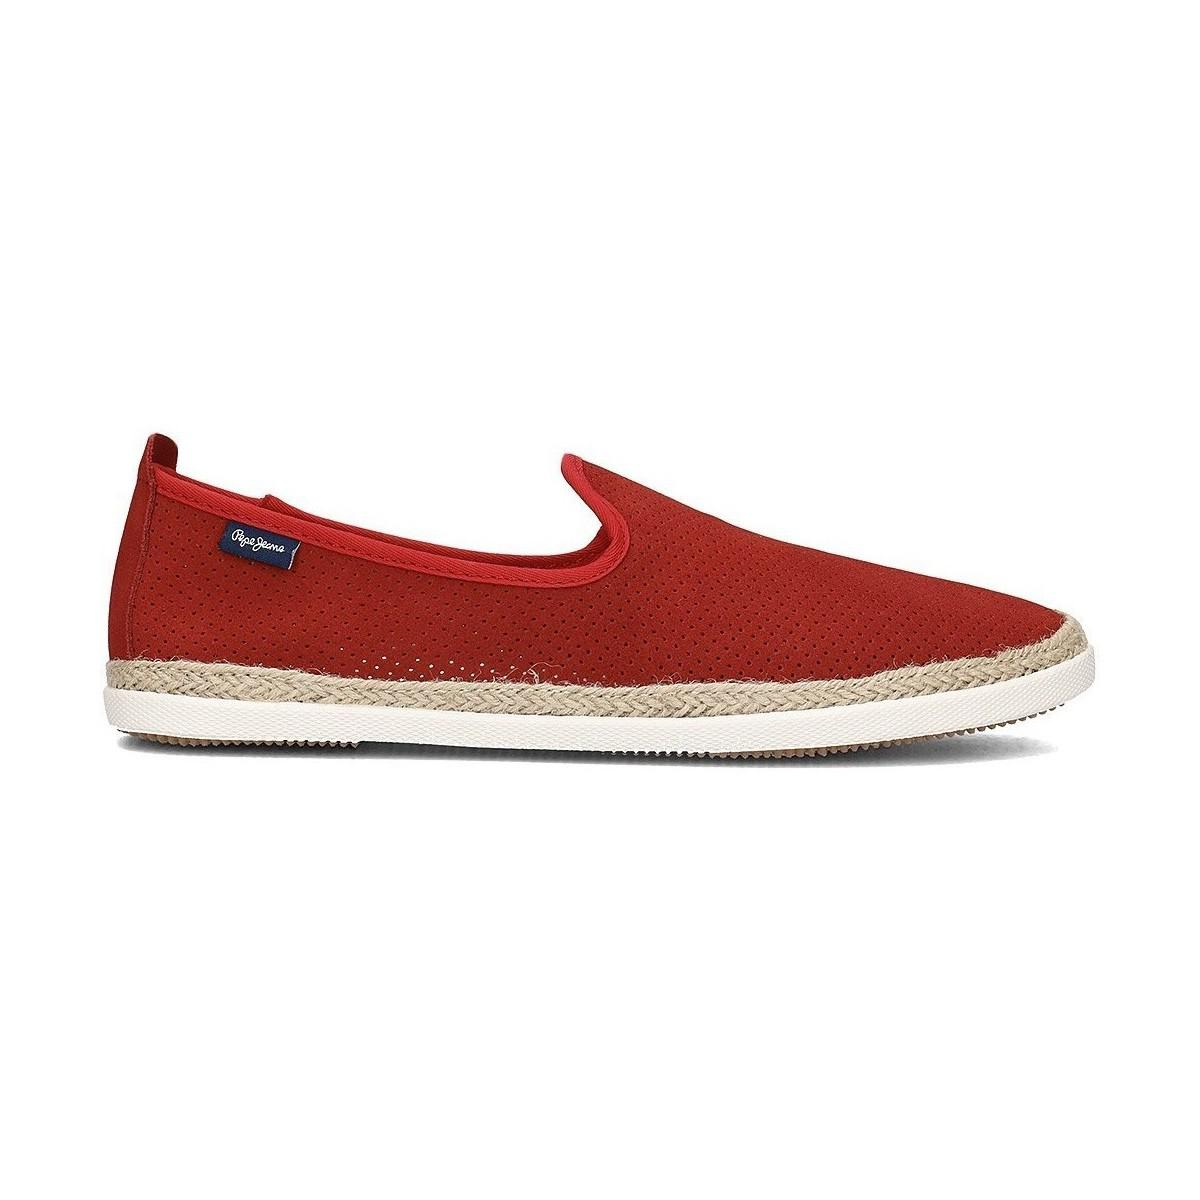 3d9ad5690de Pepe Jeans Maui Summer Men s Slip-ons (shoes) In Red in Red for Men ...